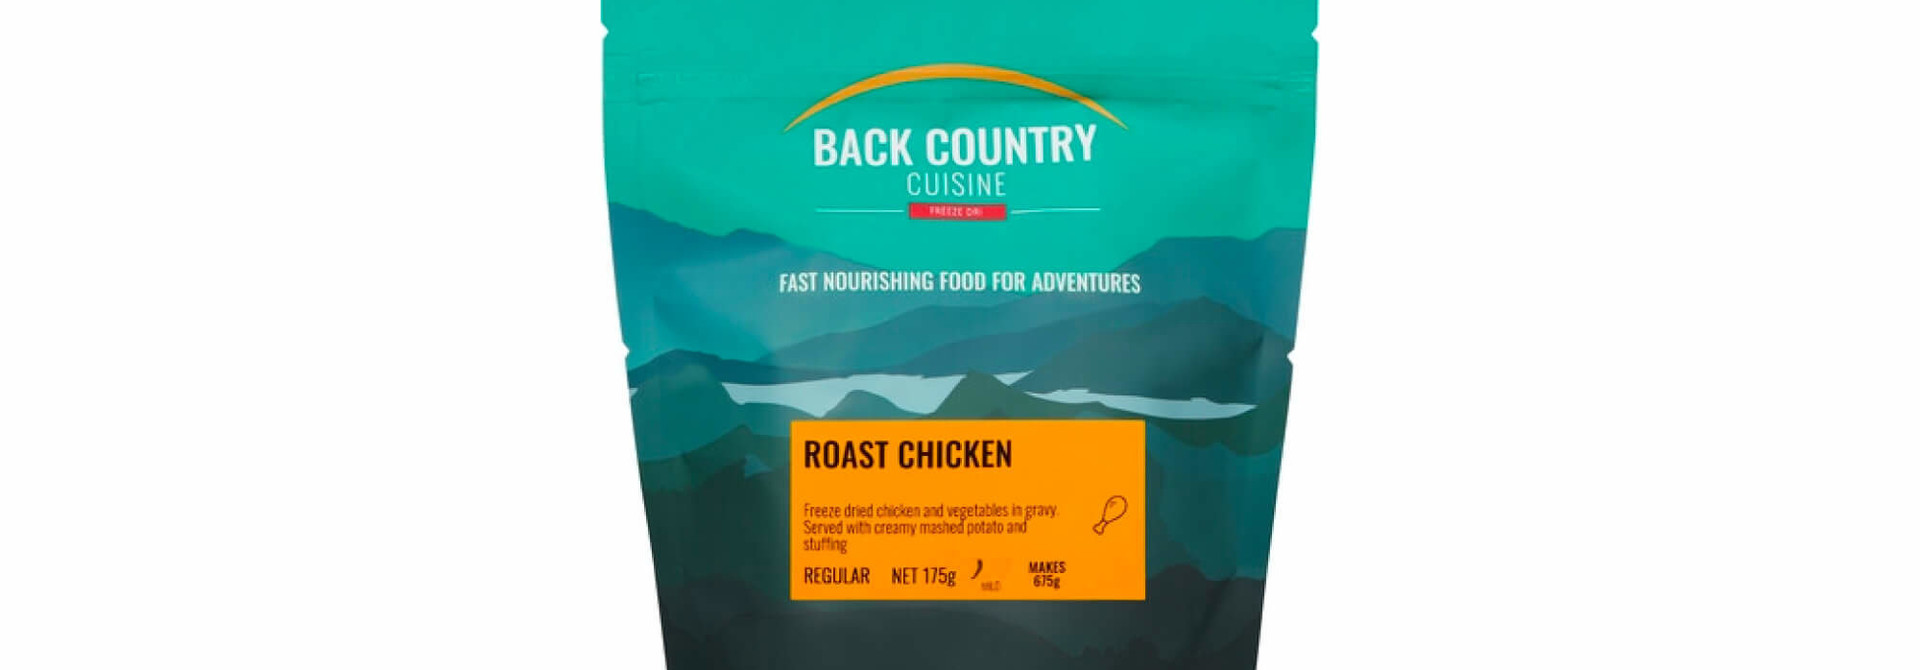 Back Country Cuisine Roast Chicken Regular